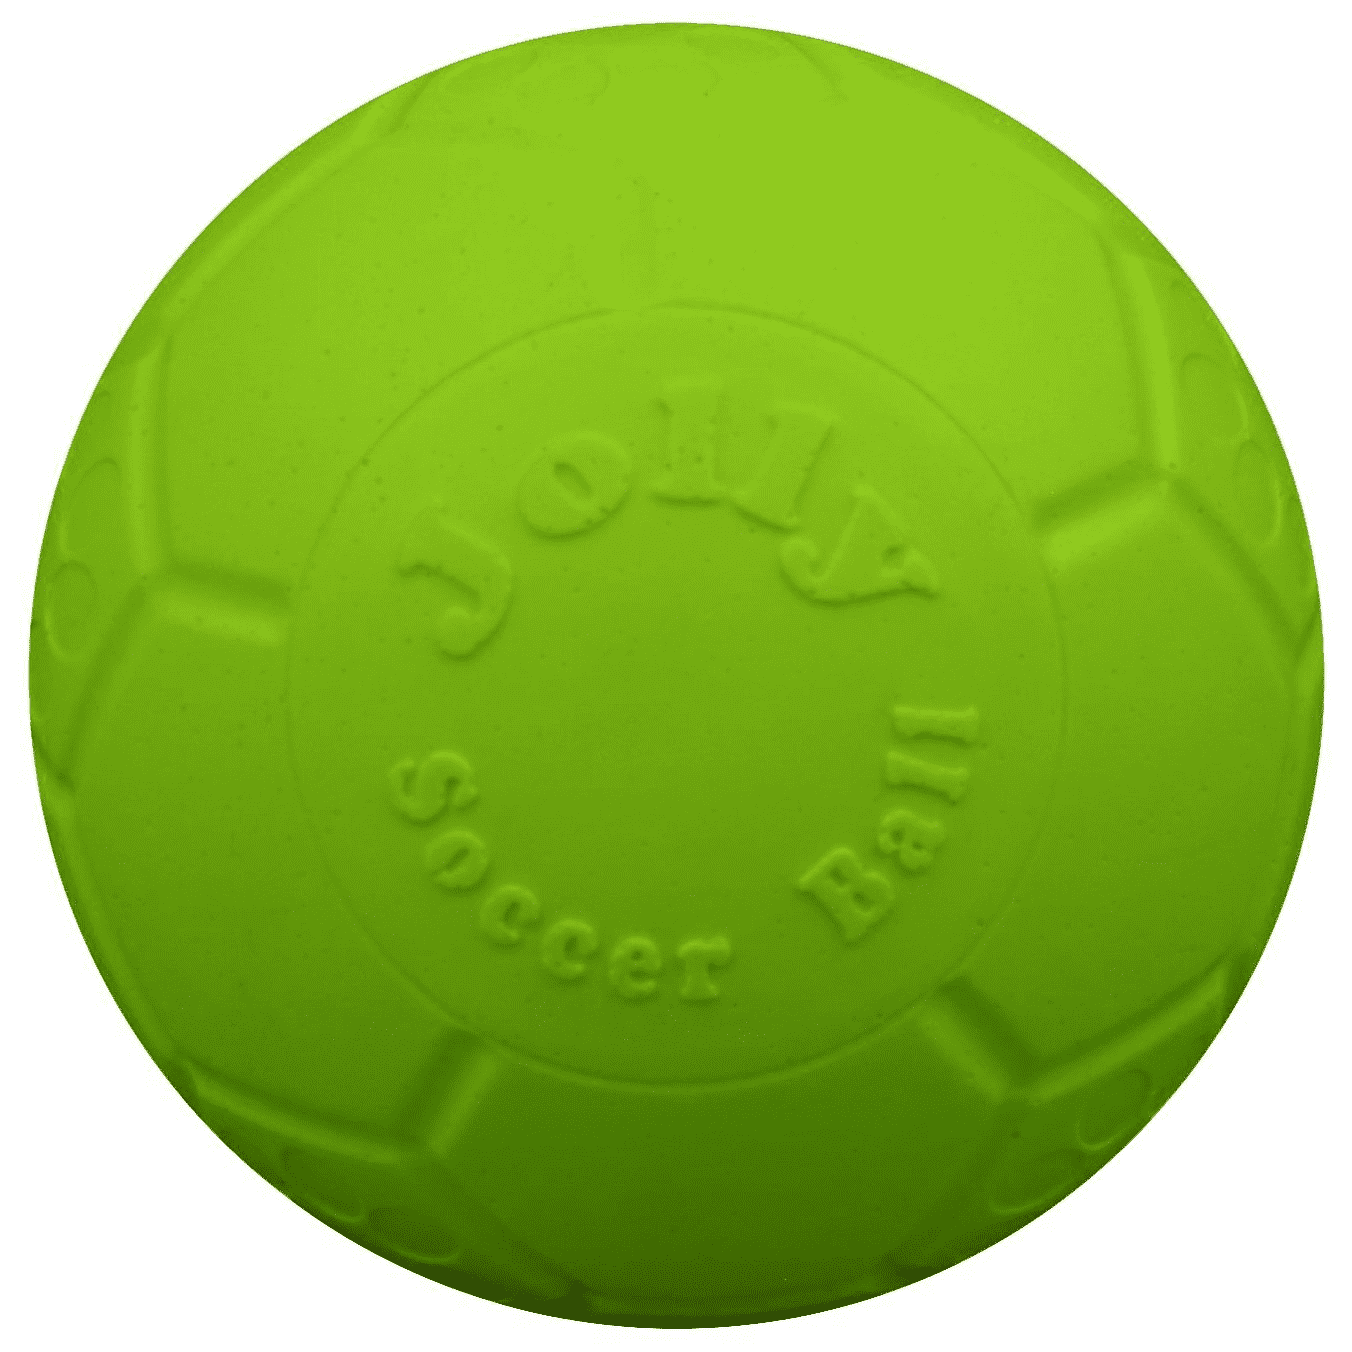 Jolly Pets Soccer Ball Dog Toy, Green Apple Image